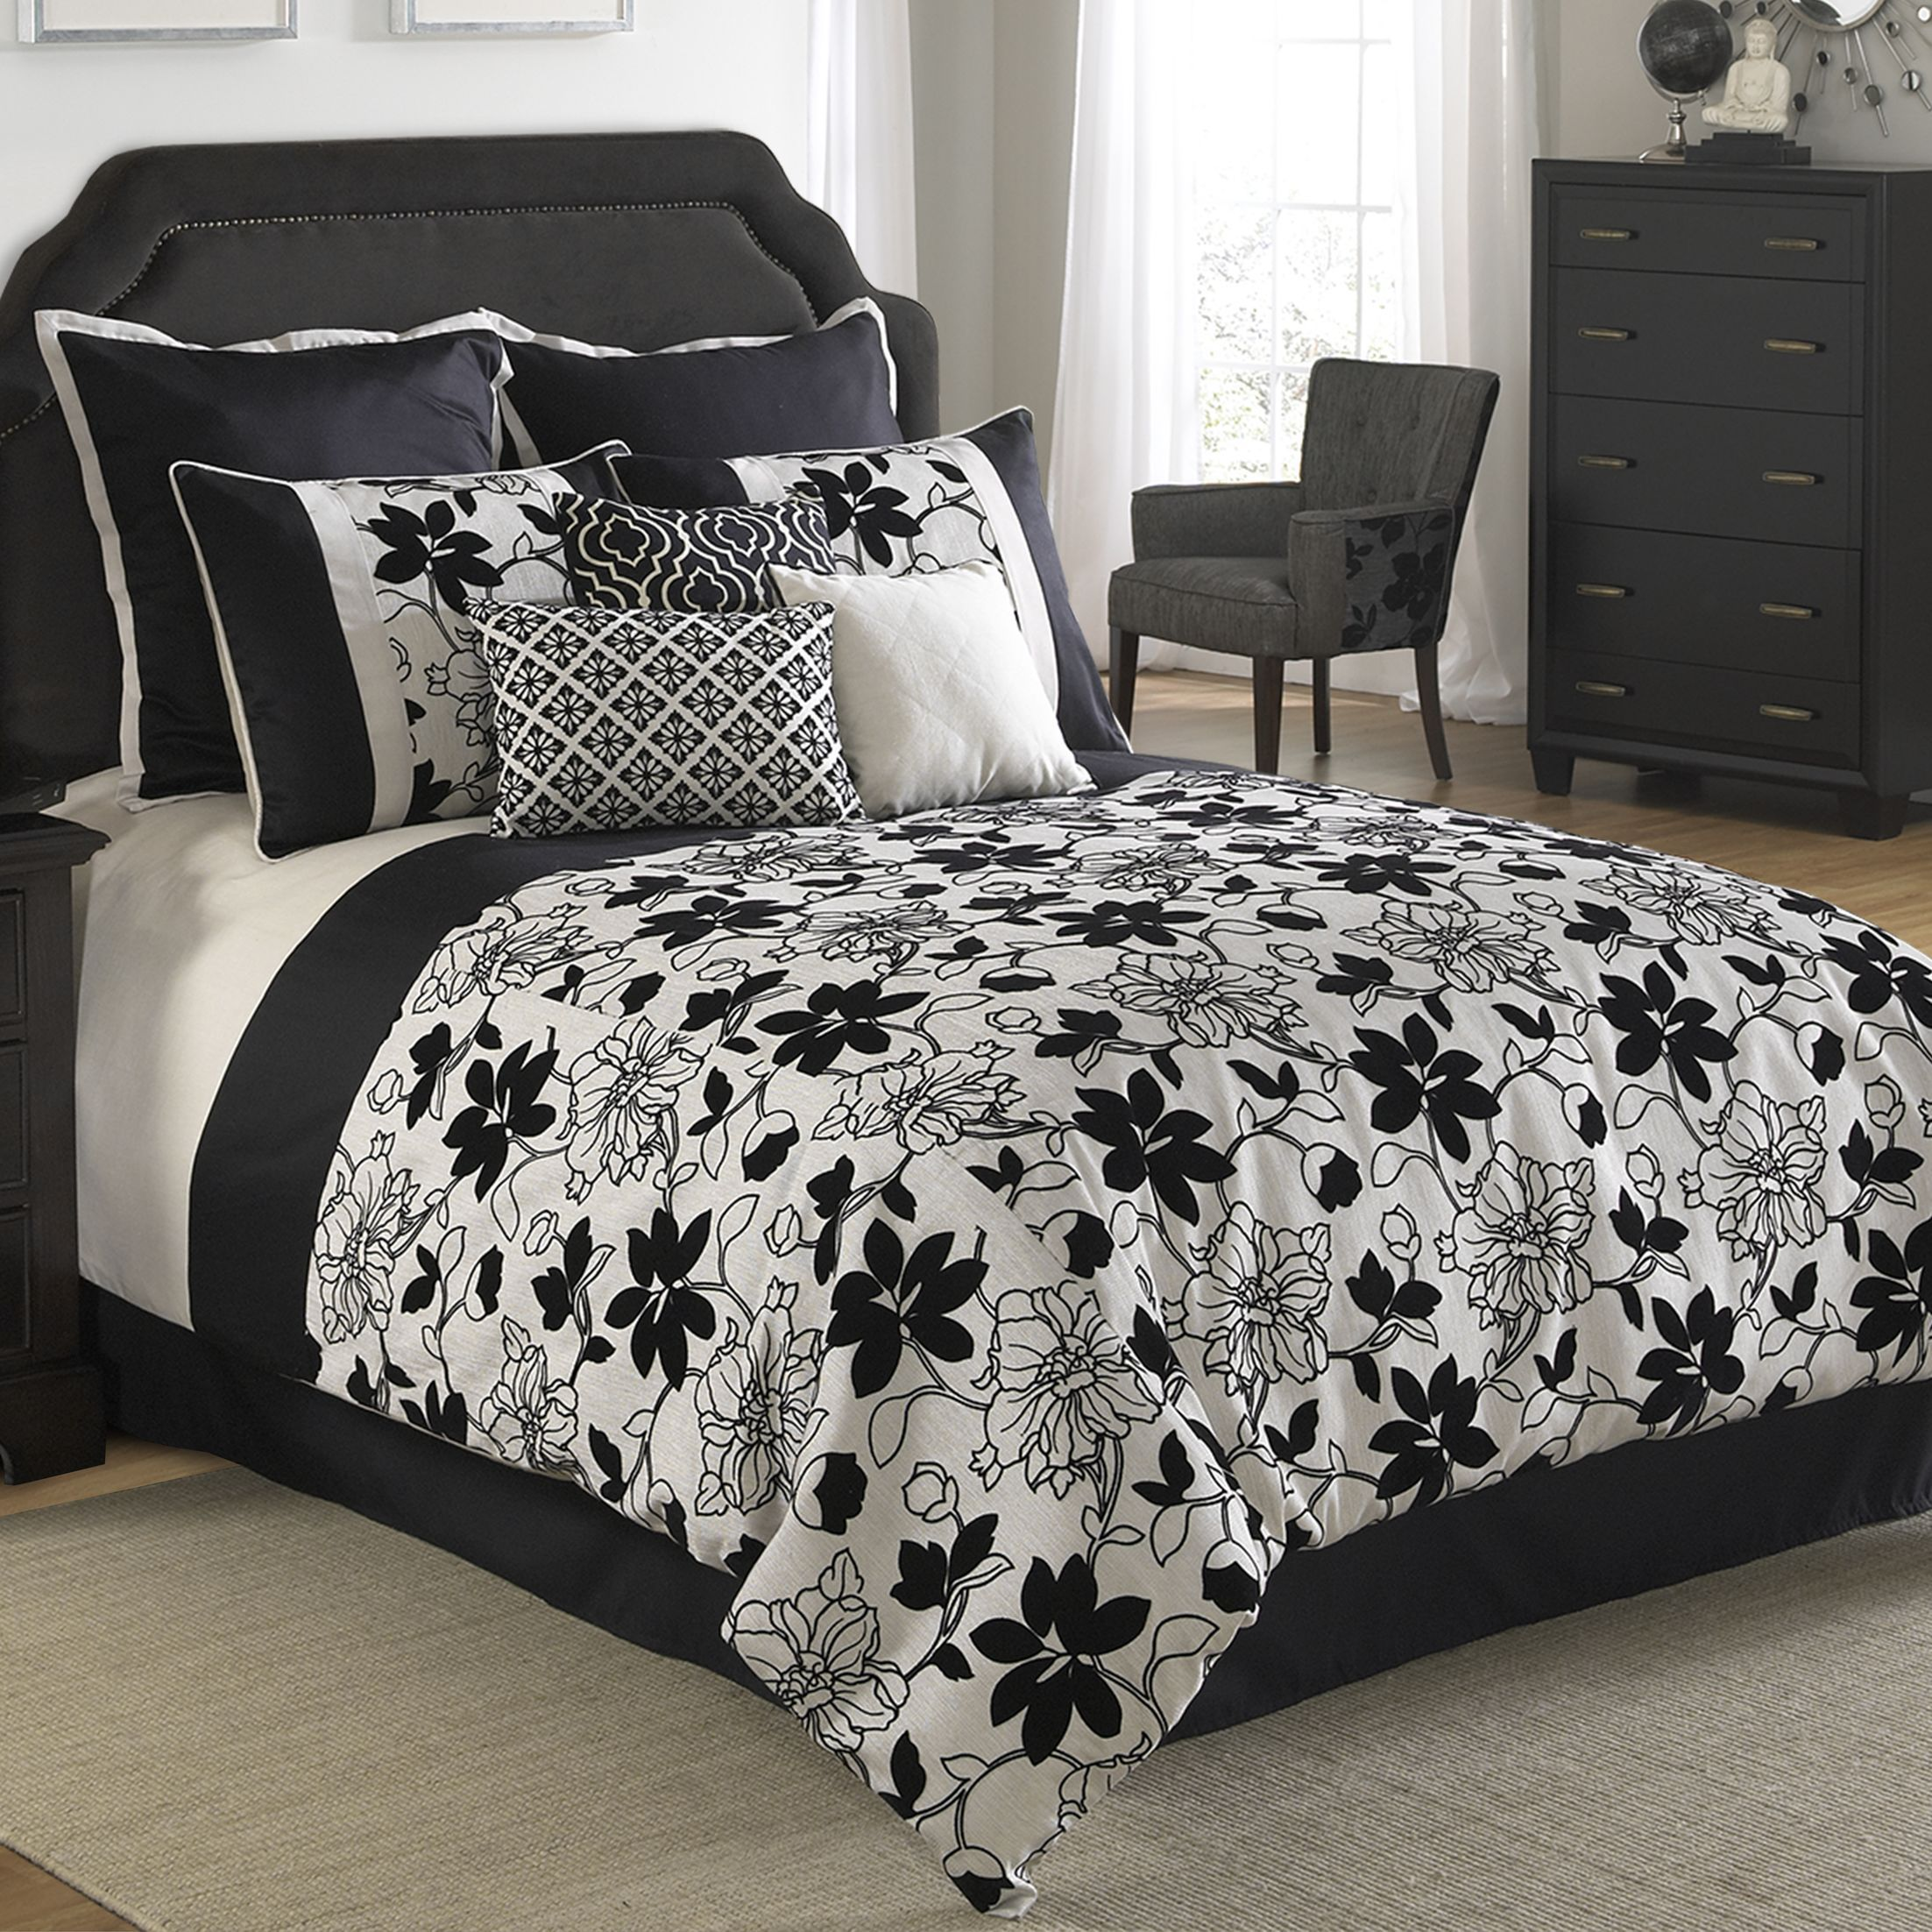 Ebony and Ivory Comforter Set Bedroom